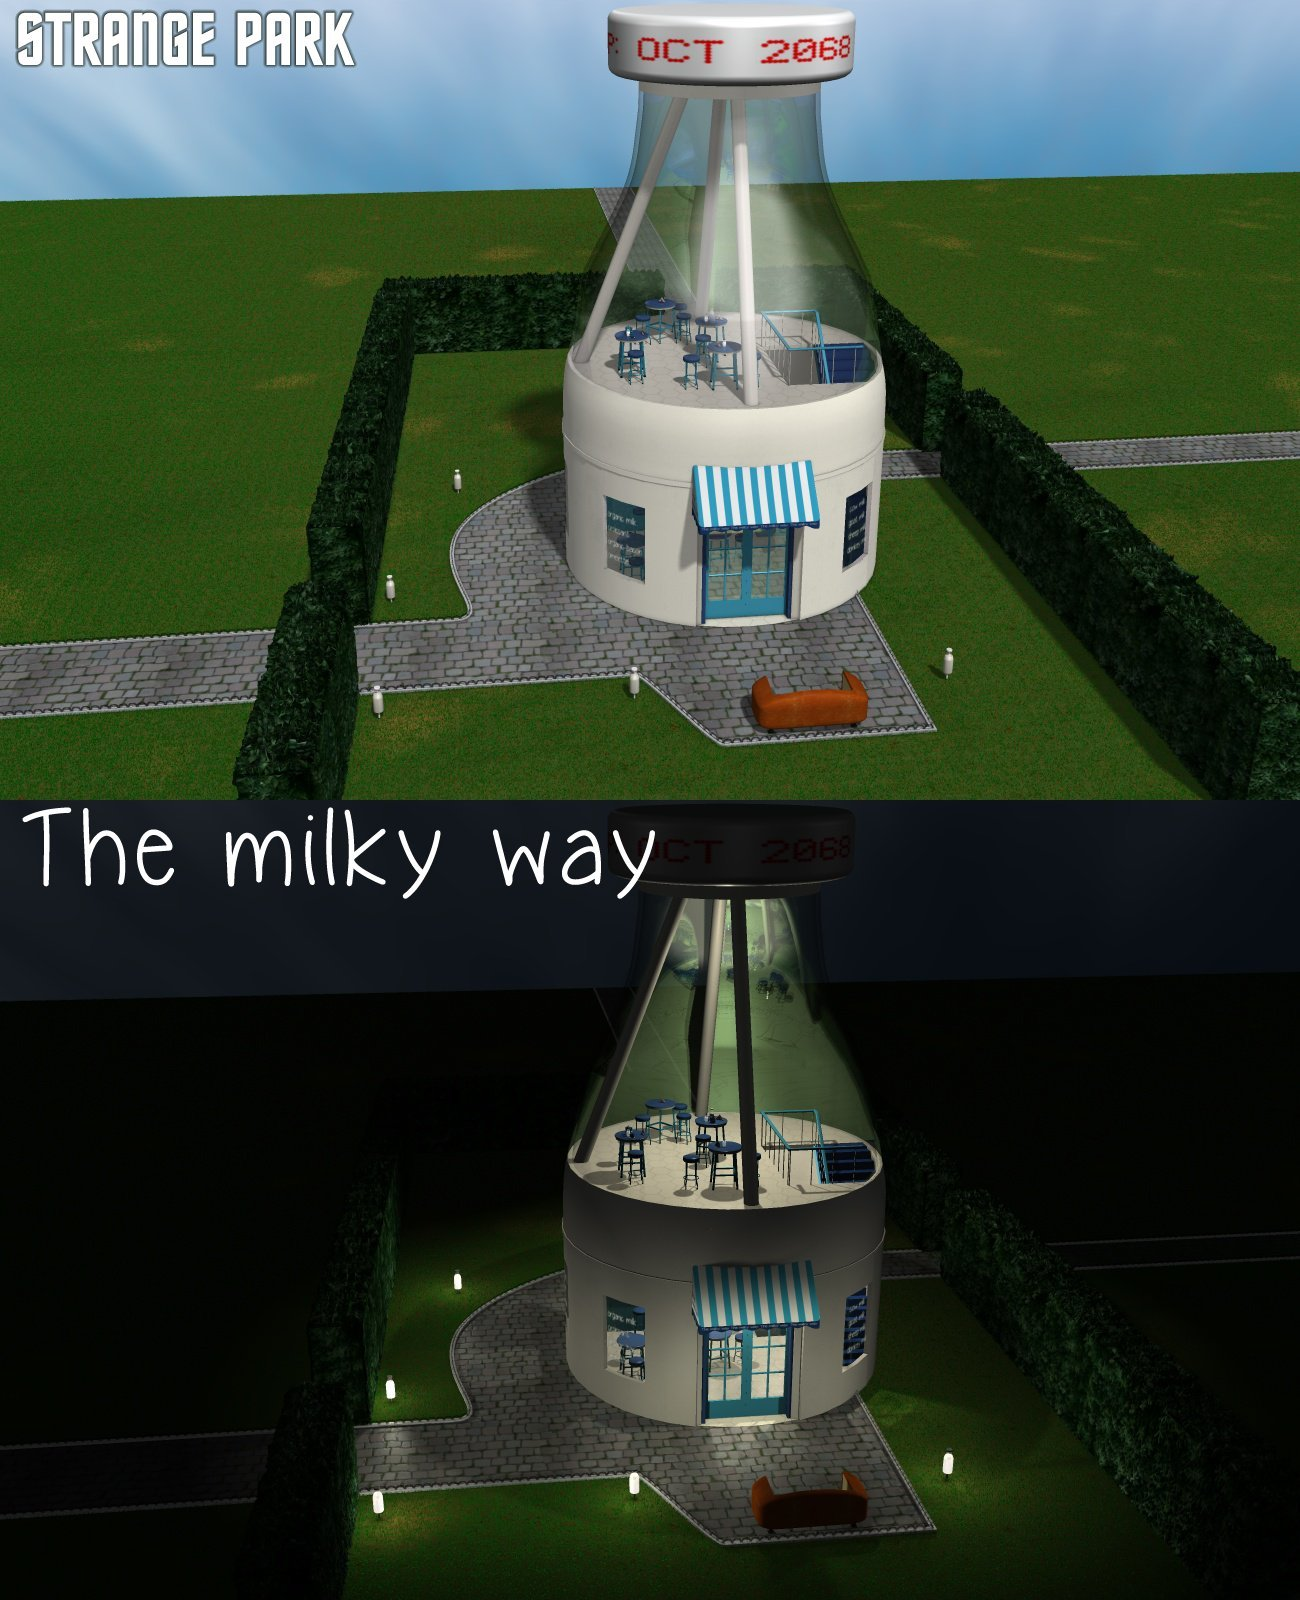 Strange Park - The milky way - Extended License